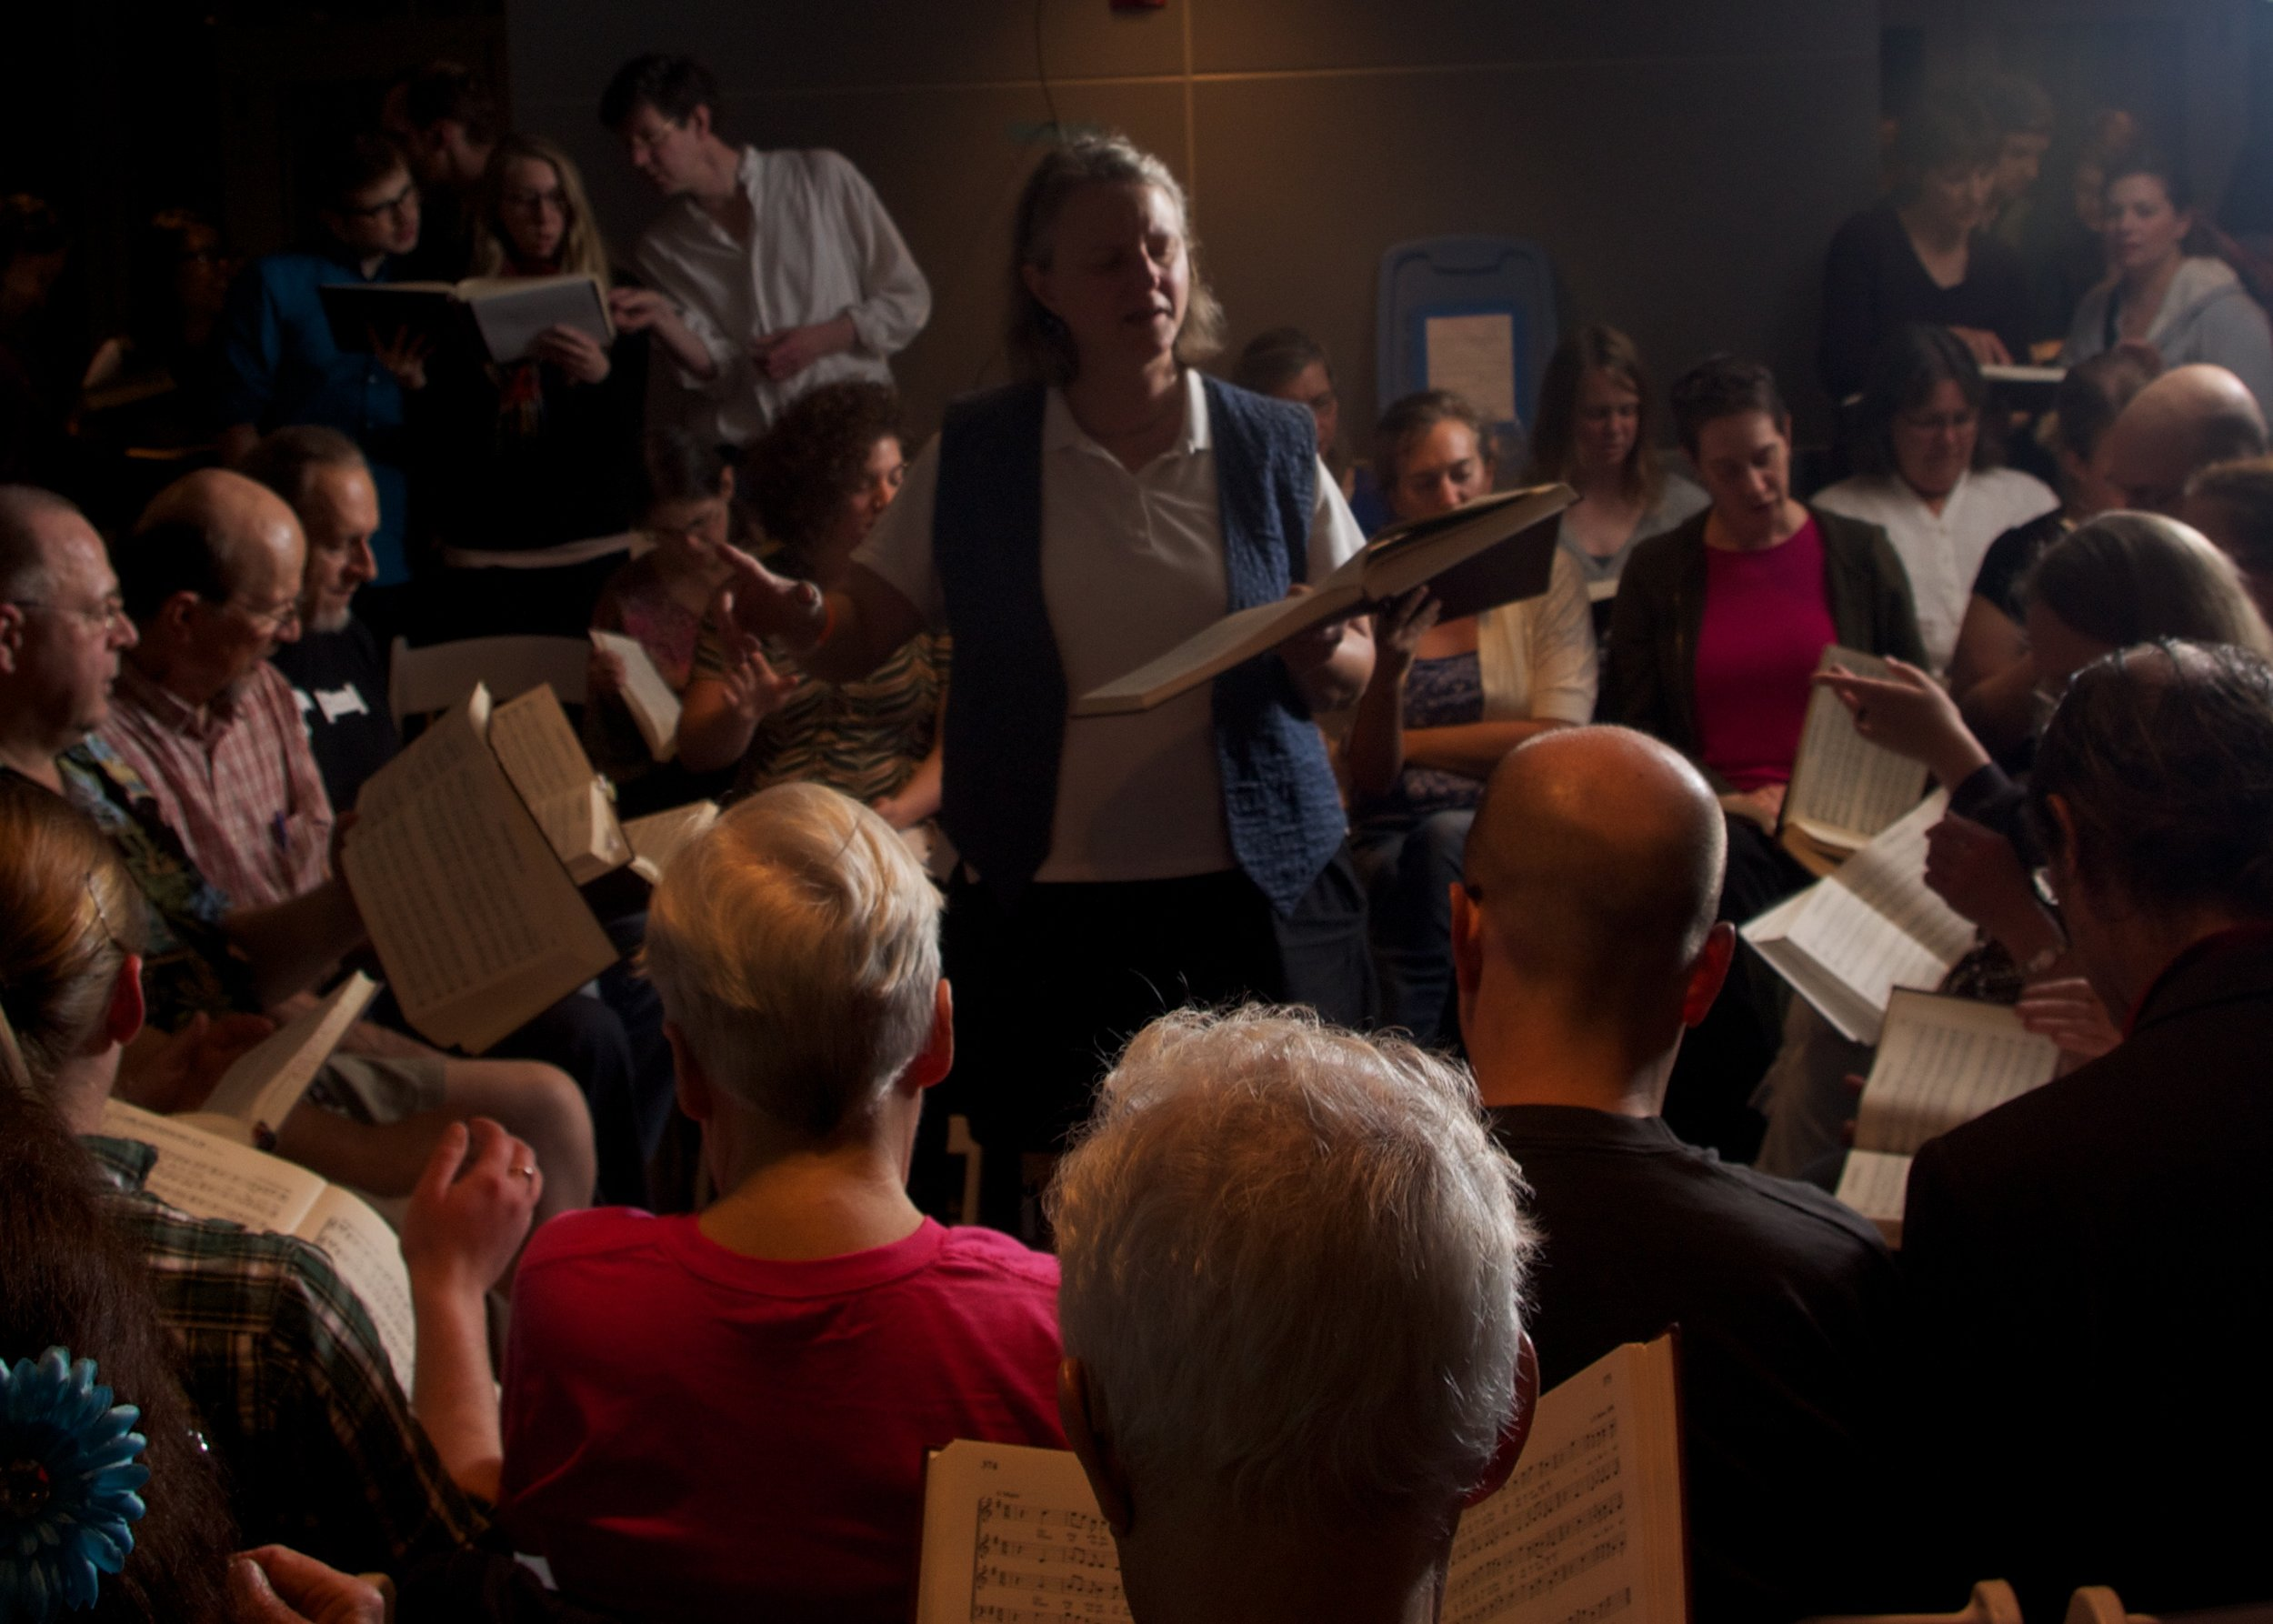 Image: Minnesota State Sacred Harp Singing Convention, Northern Spark, Flickr (Creative Commons)